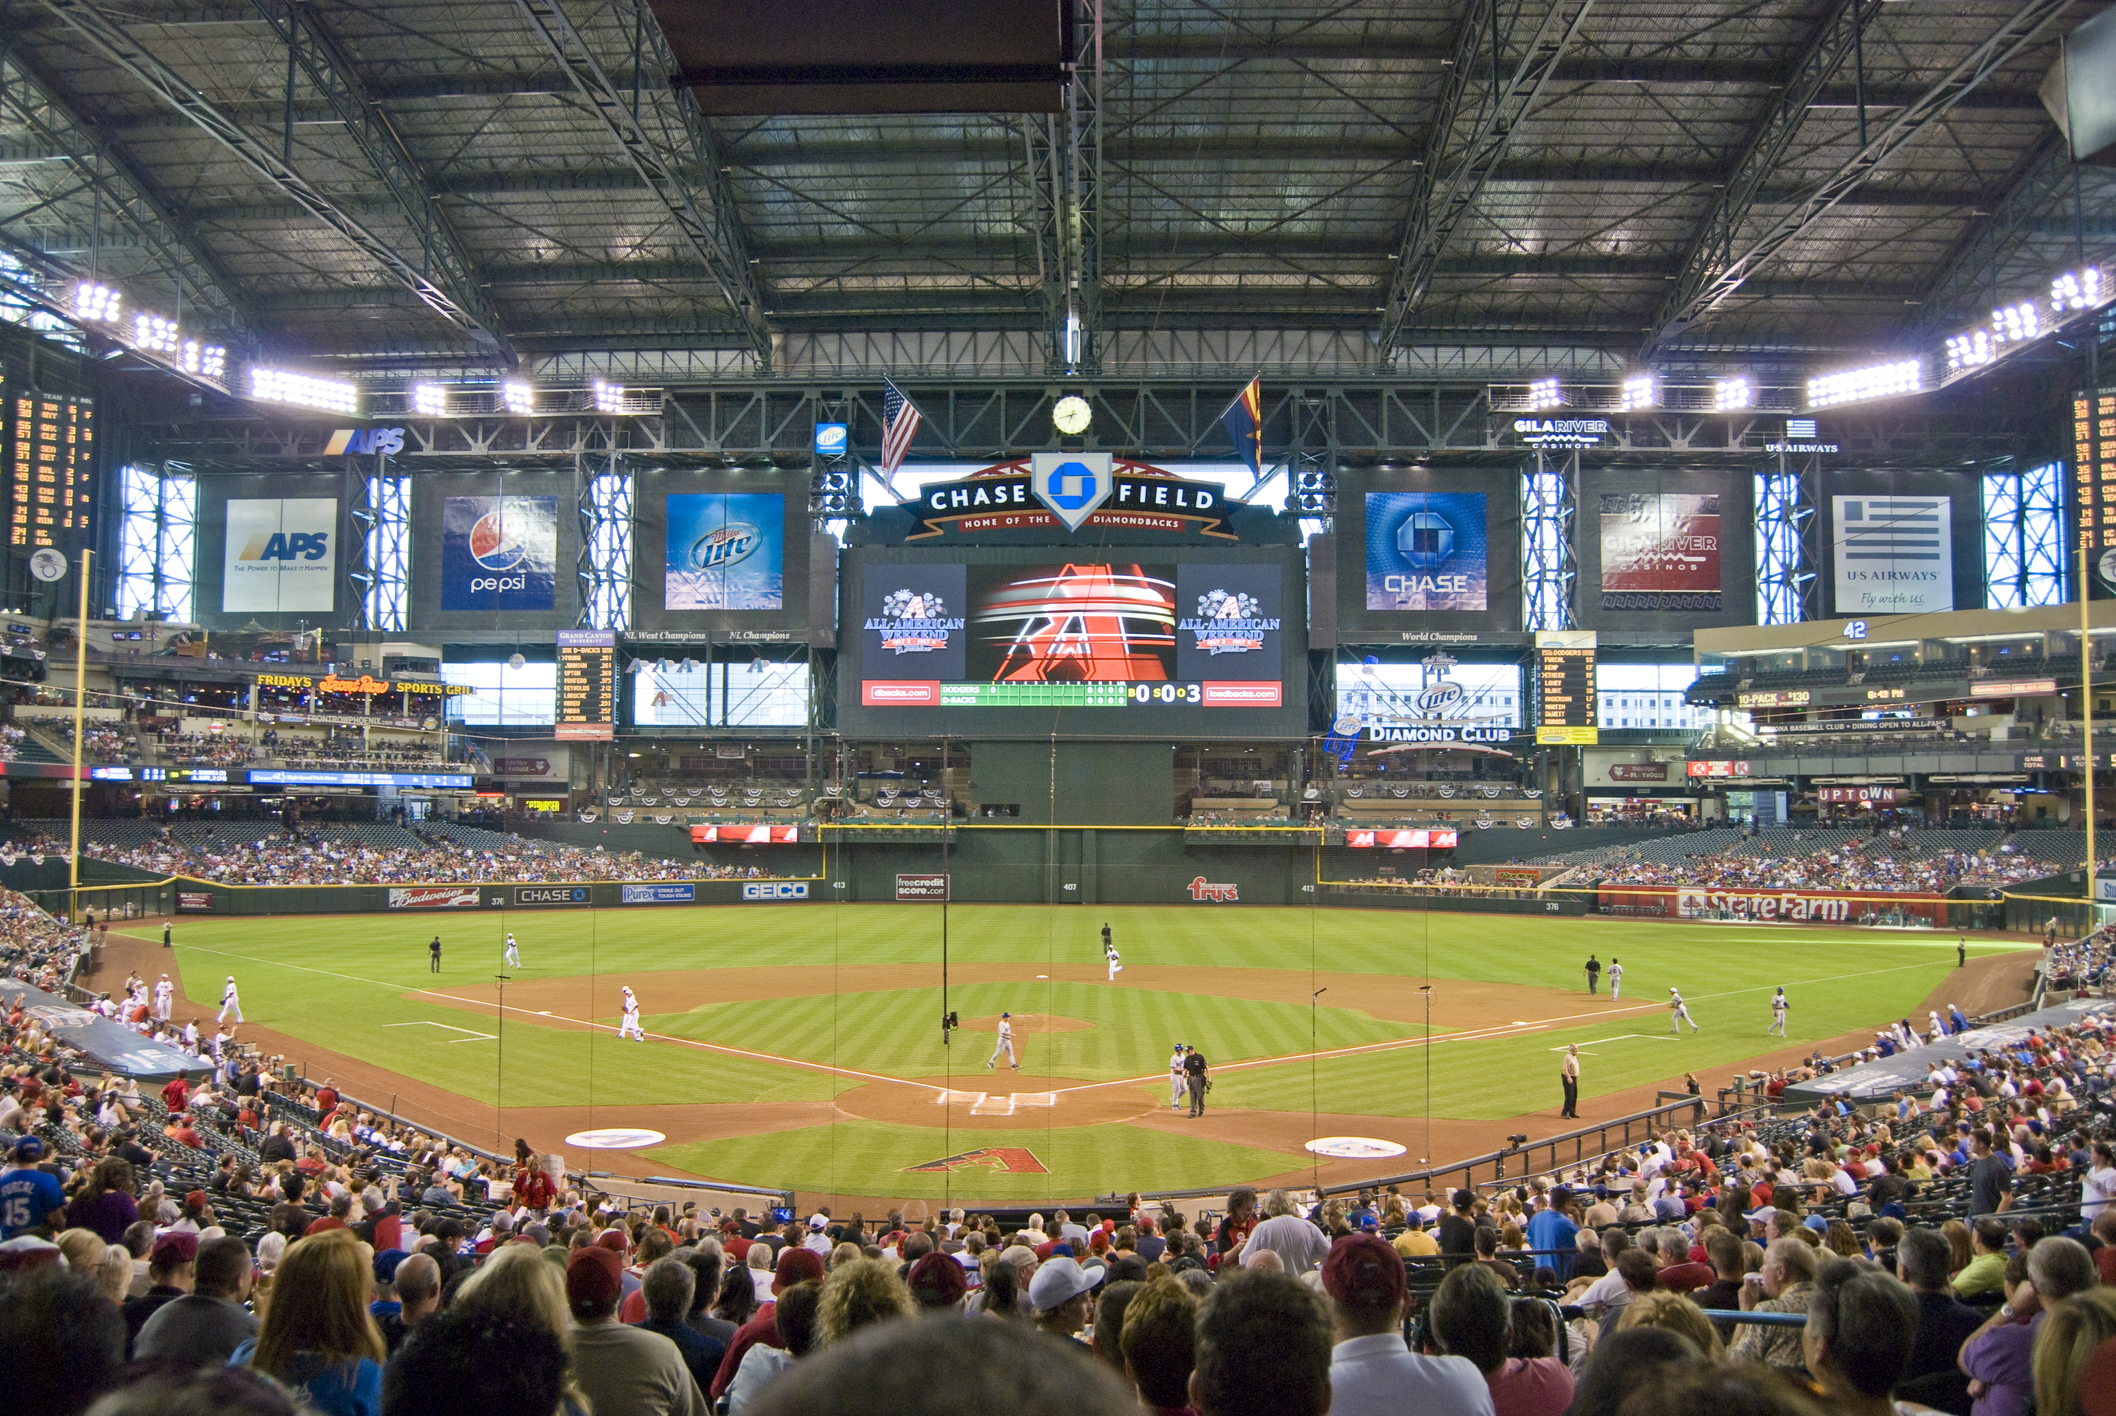 Behind Home Plate at Chase Field